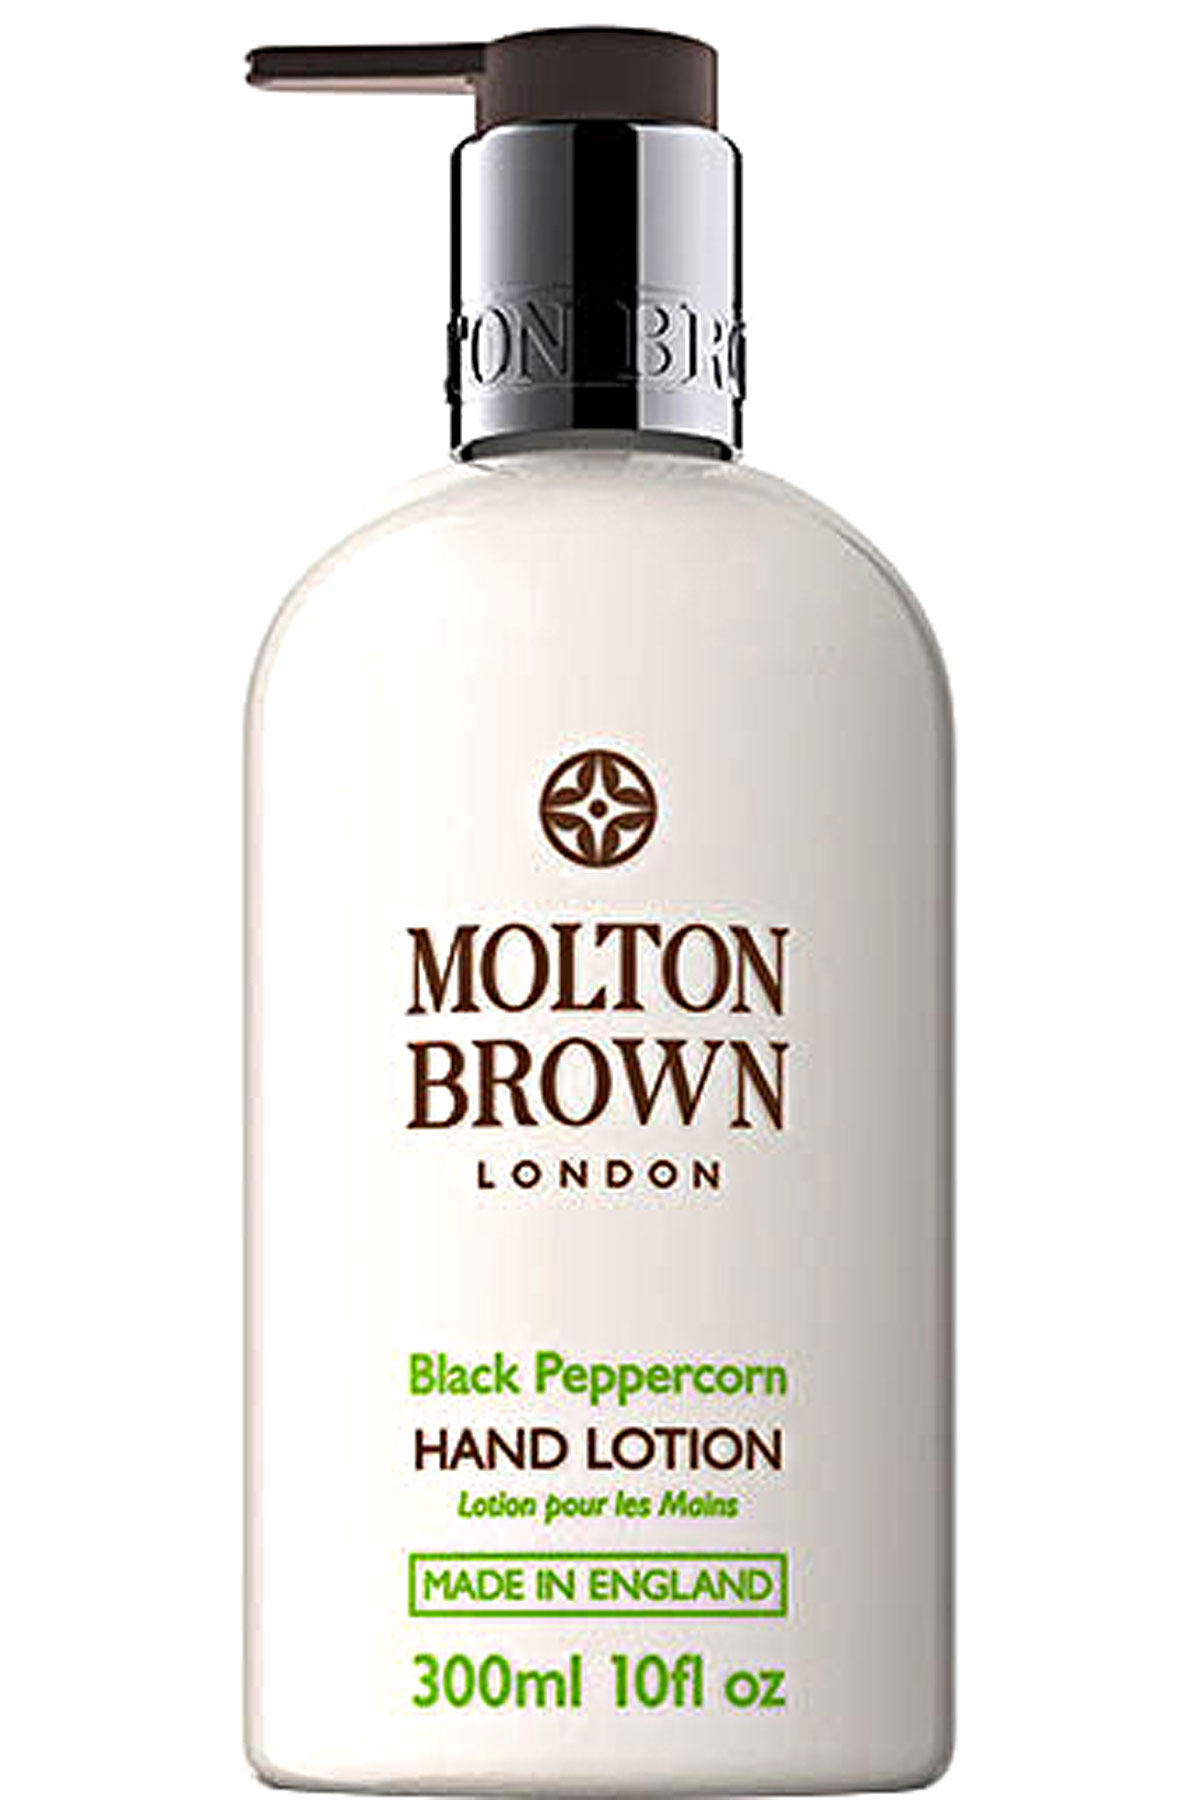 Molton Brown Beauty for Men, Black Peppercorn - Hand Lotion - 300 Ml, 2019, 300 ml